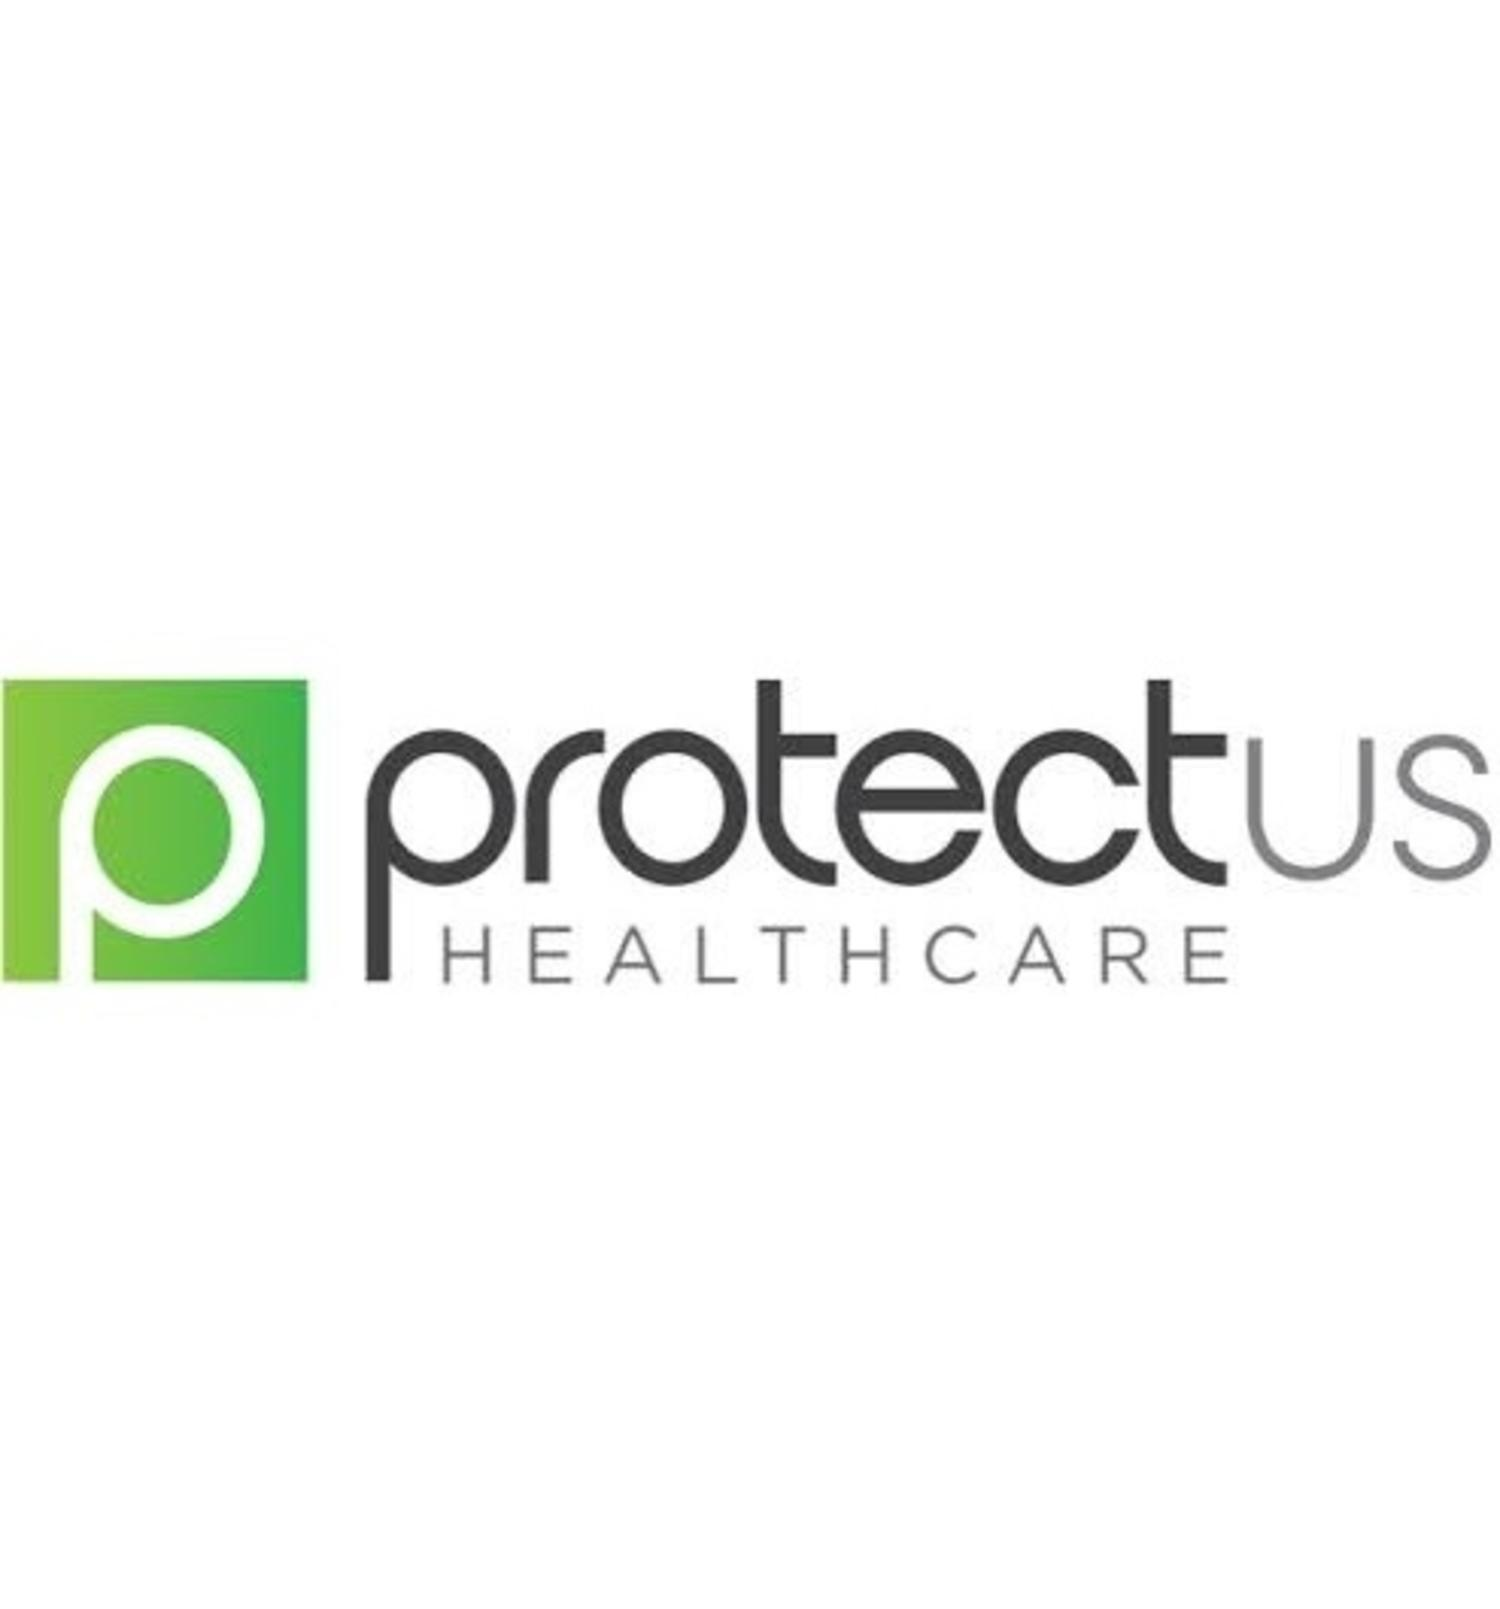 Protectus Healthcare Limited